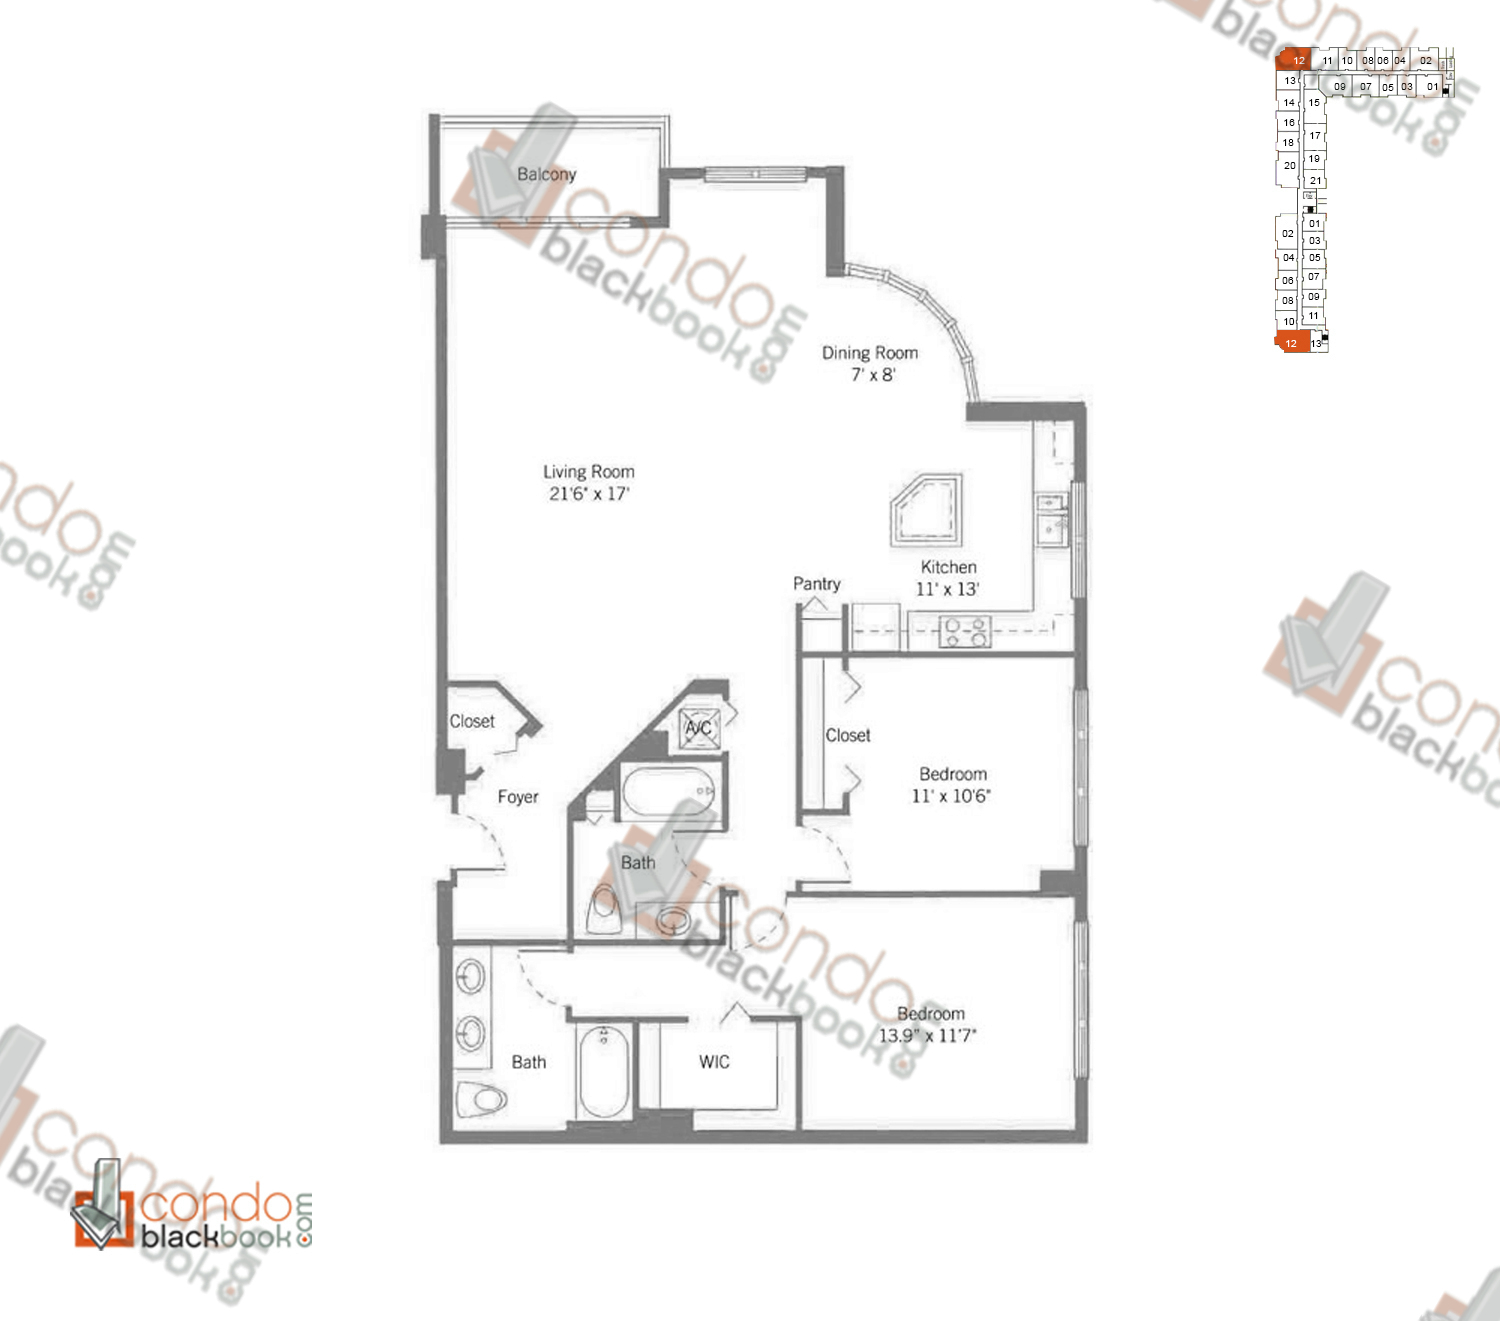 Floor plan for Cite Edgewater Miami, model H2_LOFT, line 12, 2/2 bedrooms, 1,347 sq ft